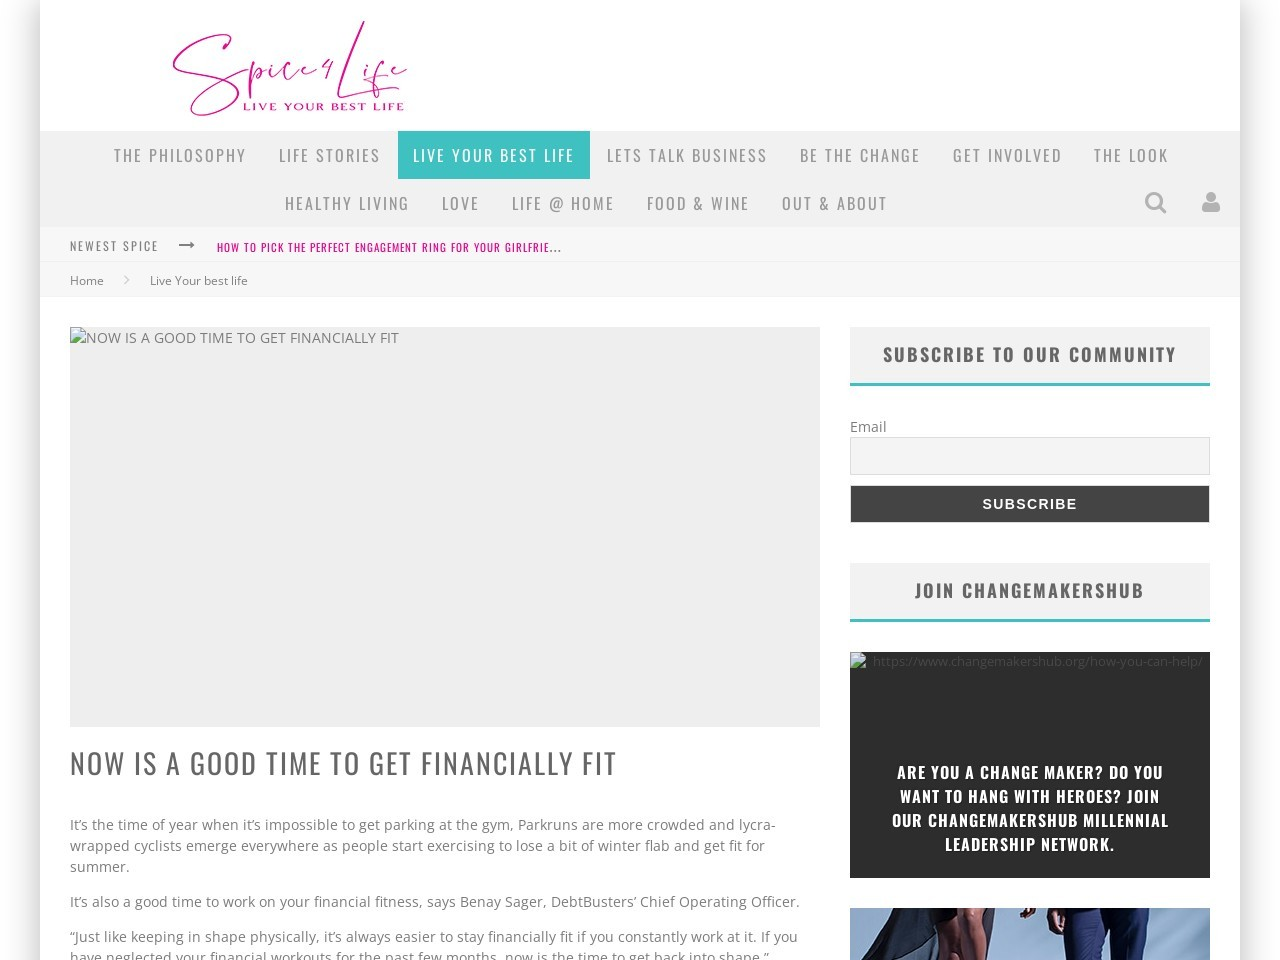 NOW IS A GOOD TIME TO GET FINANCIALLY FIT